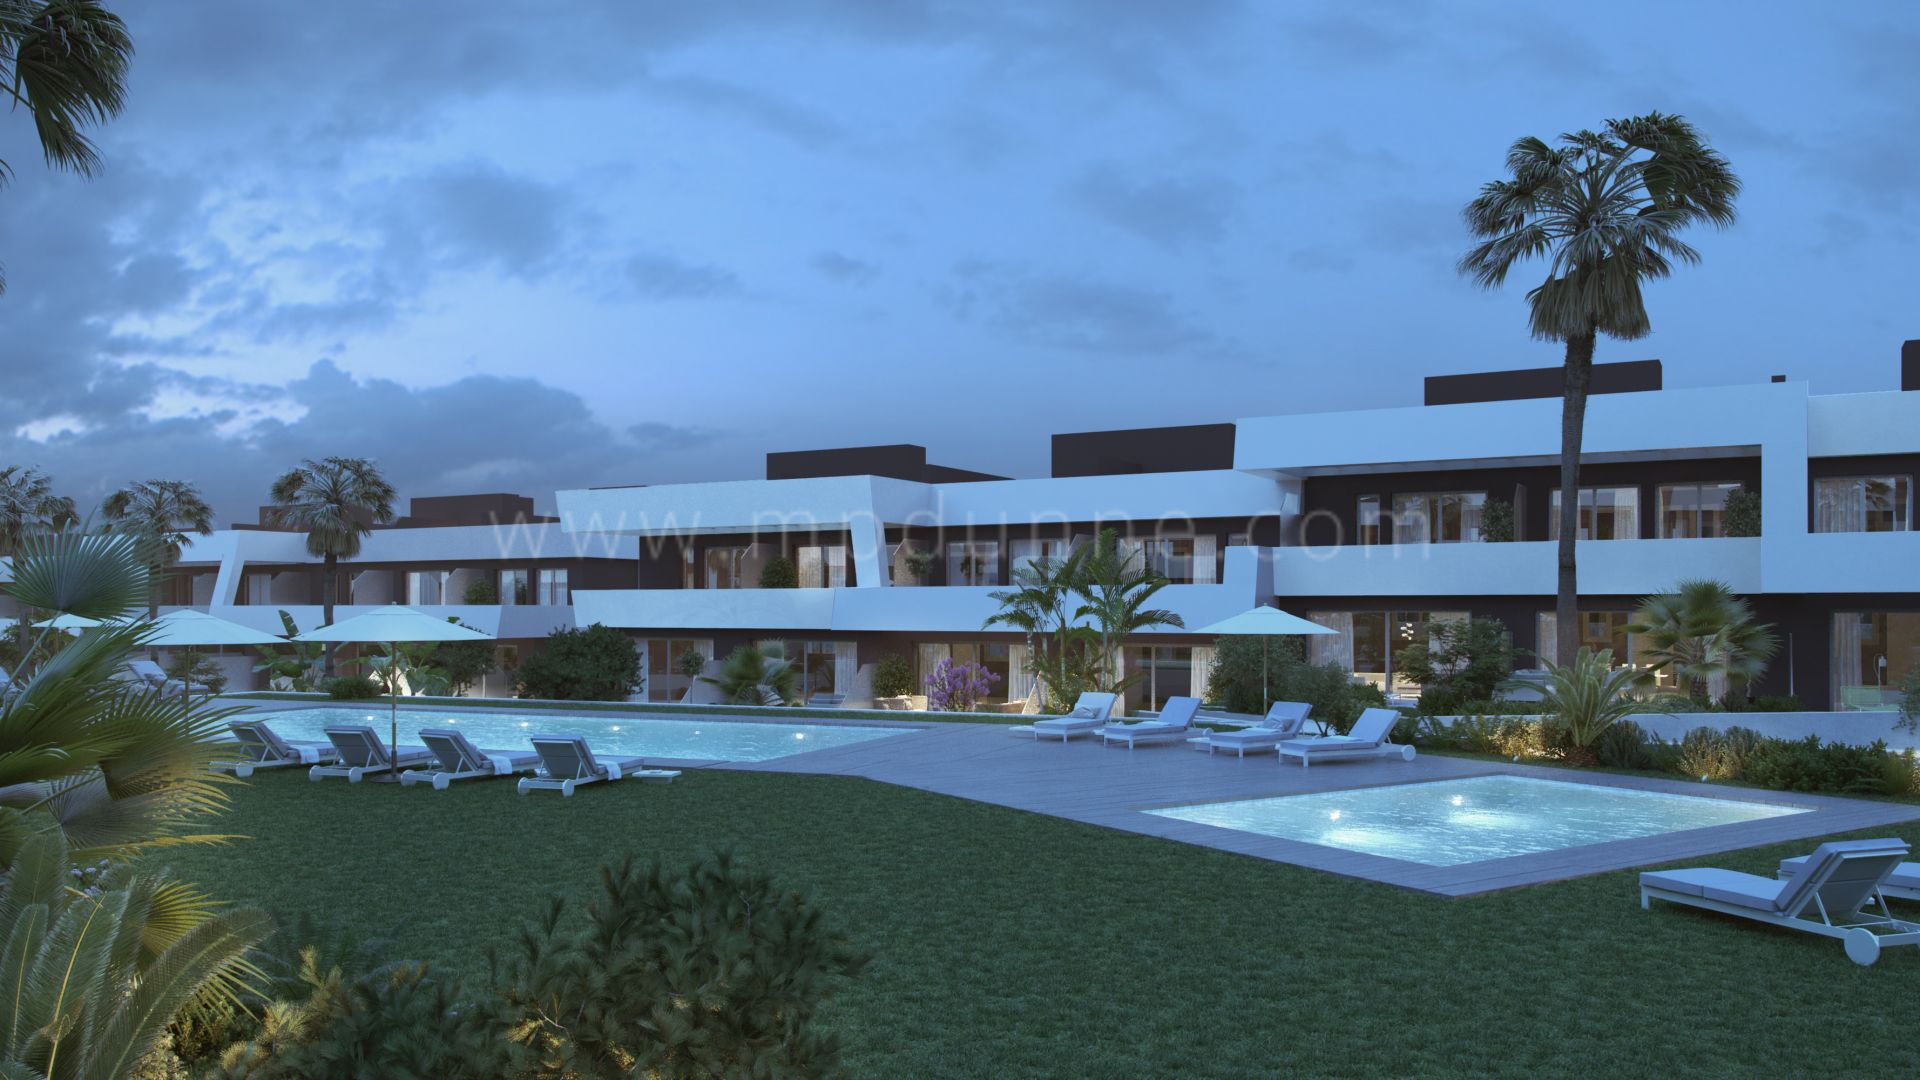 Development in La Cala Hills, Mijas Costa